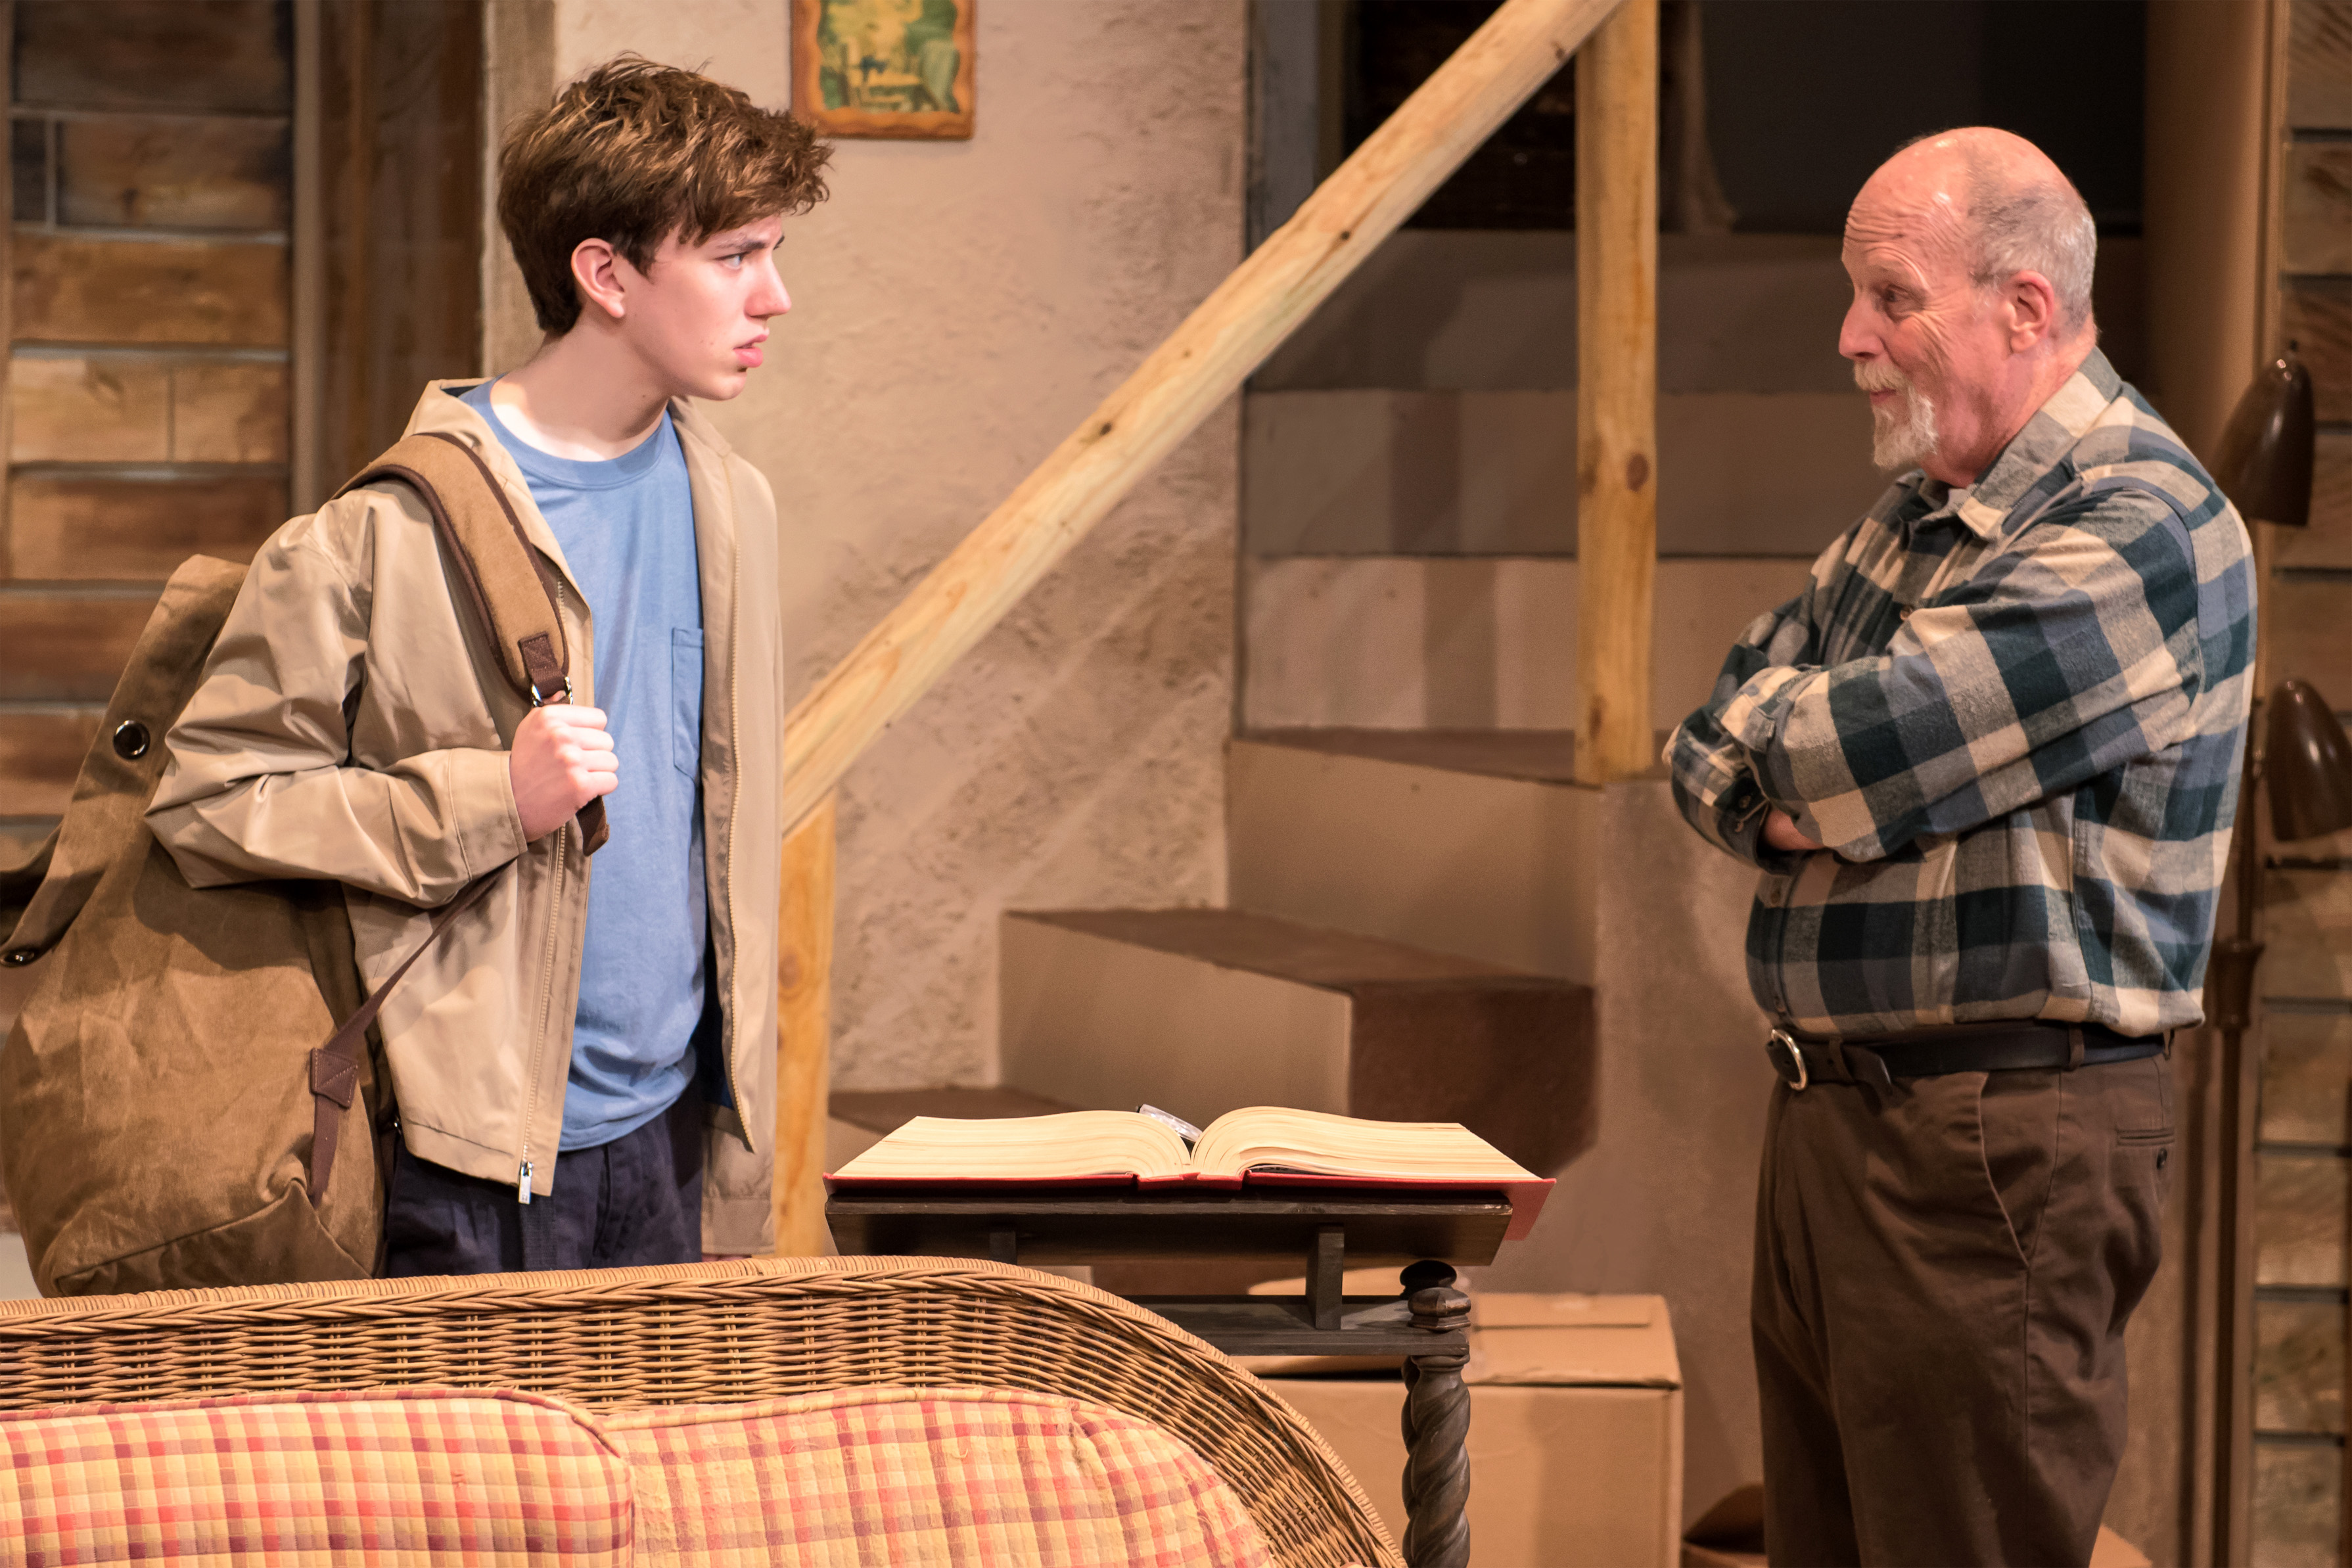 BWW Review: Controversial, Thought-Provoking A GREAT WILDERNESS at Beck Center for the Arts